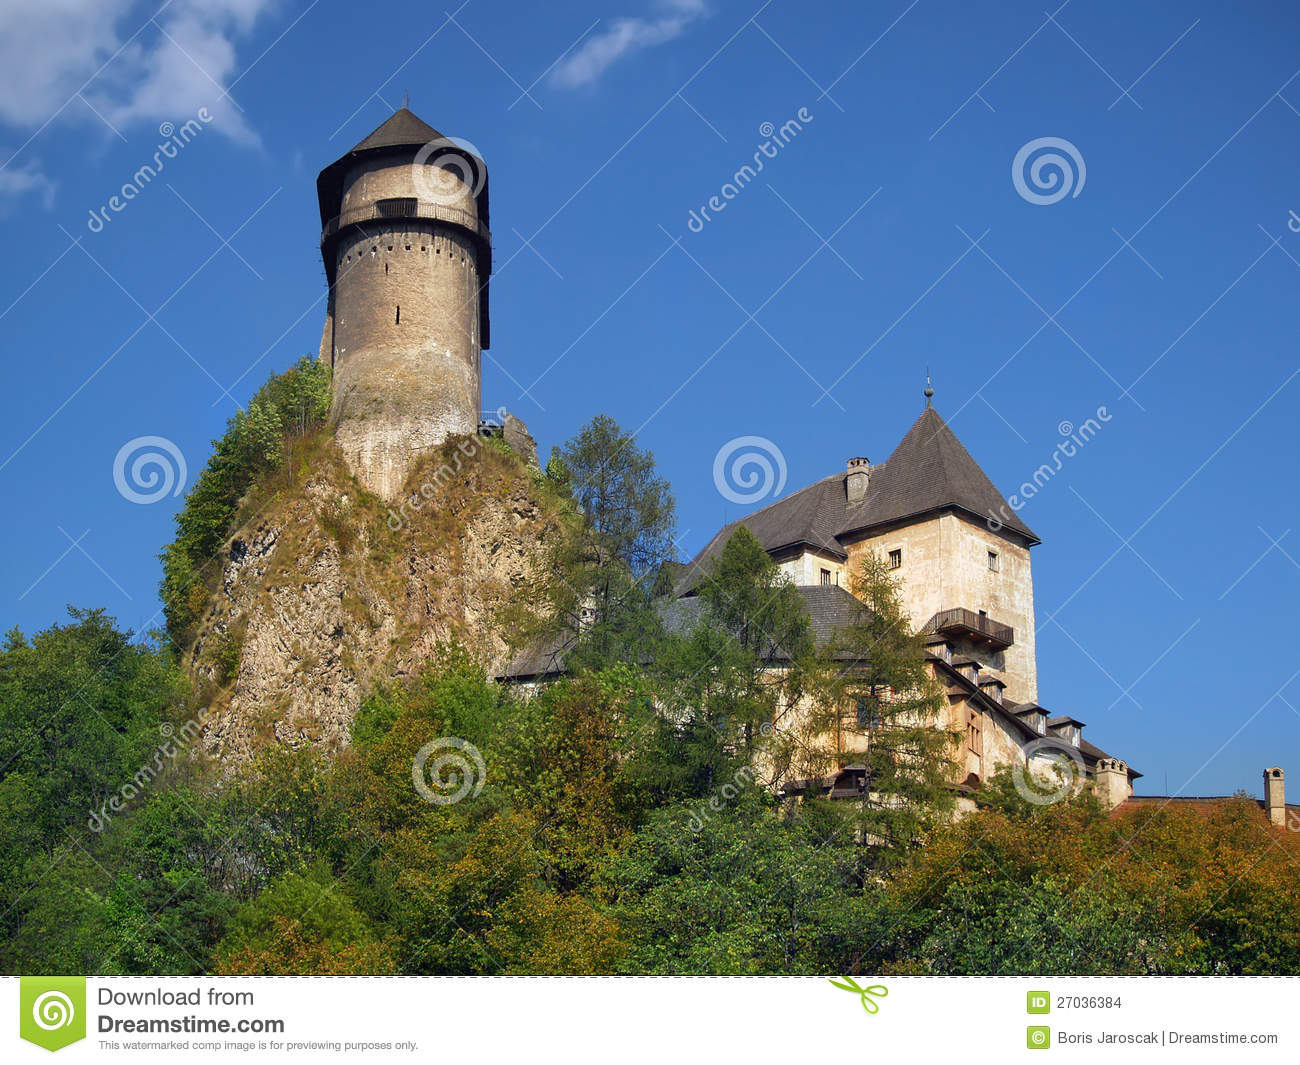 Fortification of Orava Castle on the high rock